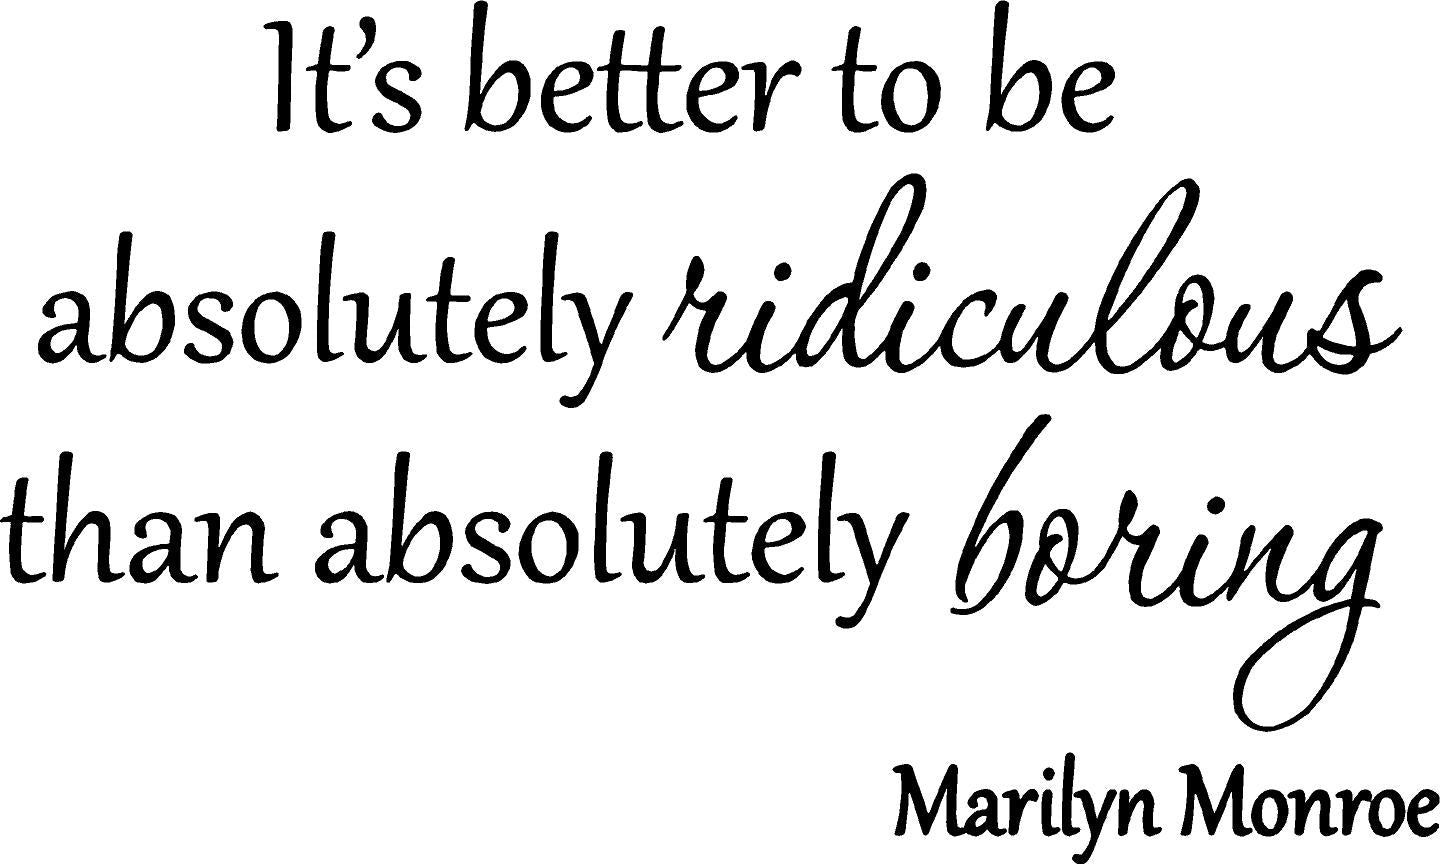 VWAQ It's Better to Be Absolutely Ridiculous Marilyn Monroe Wall Decal - VWAQ Vinyl Wall Art Quotes and Prints